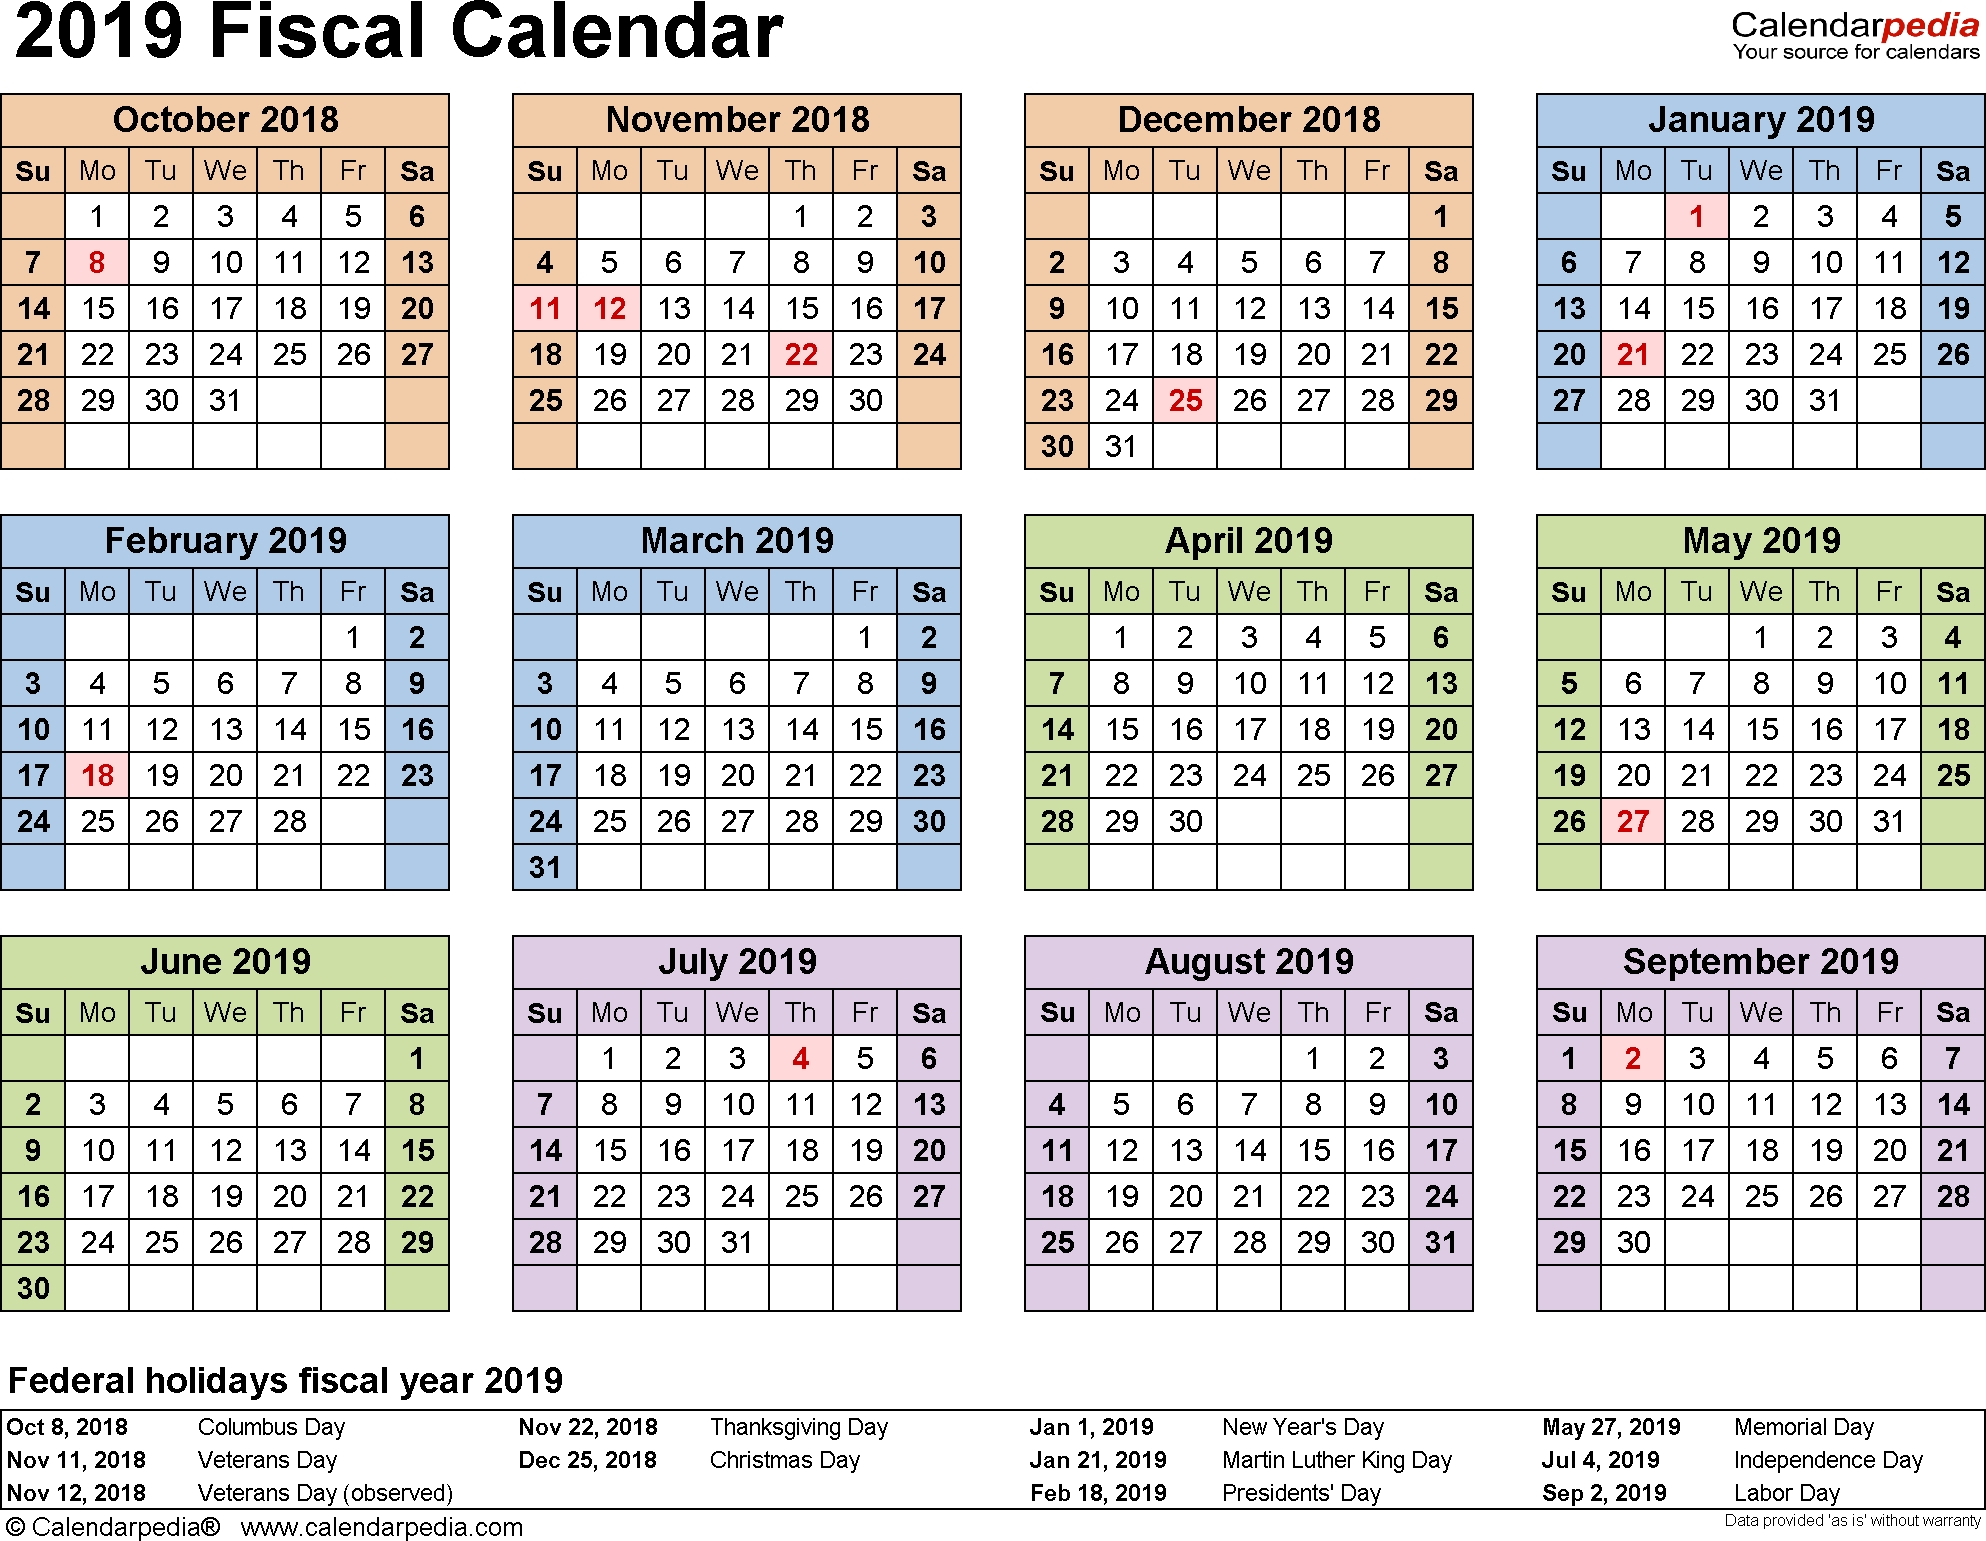 Fiscal Calendars 2019 - Free Printable Word Templates pertaining to Which Week In Fincnaicl Calendar Is It